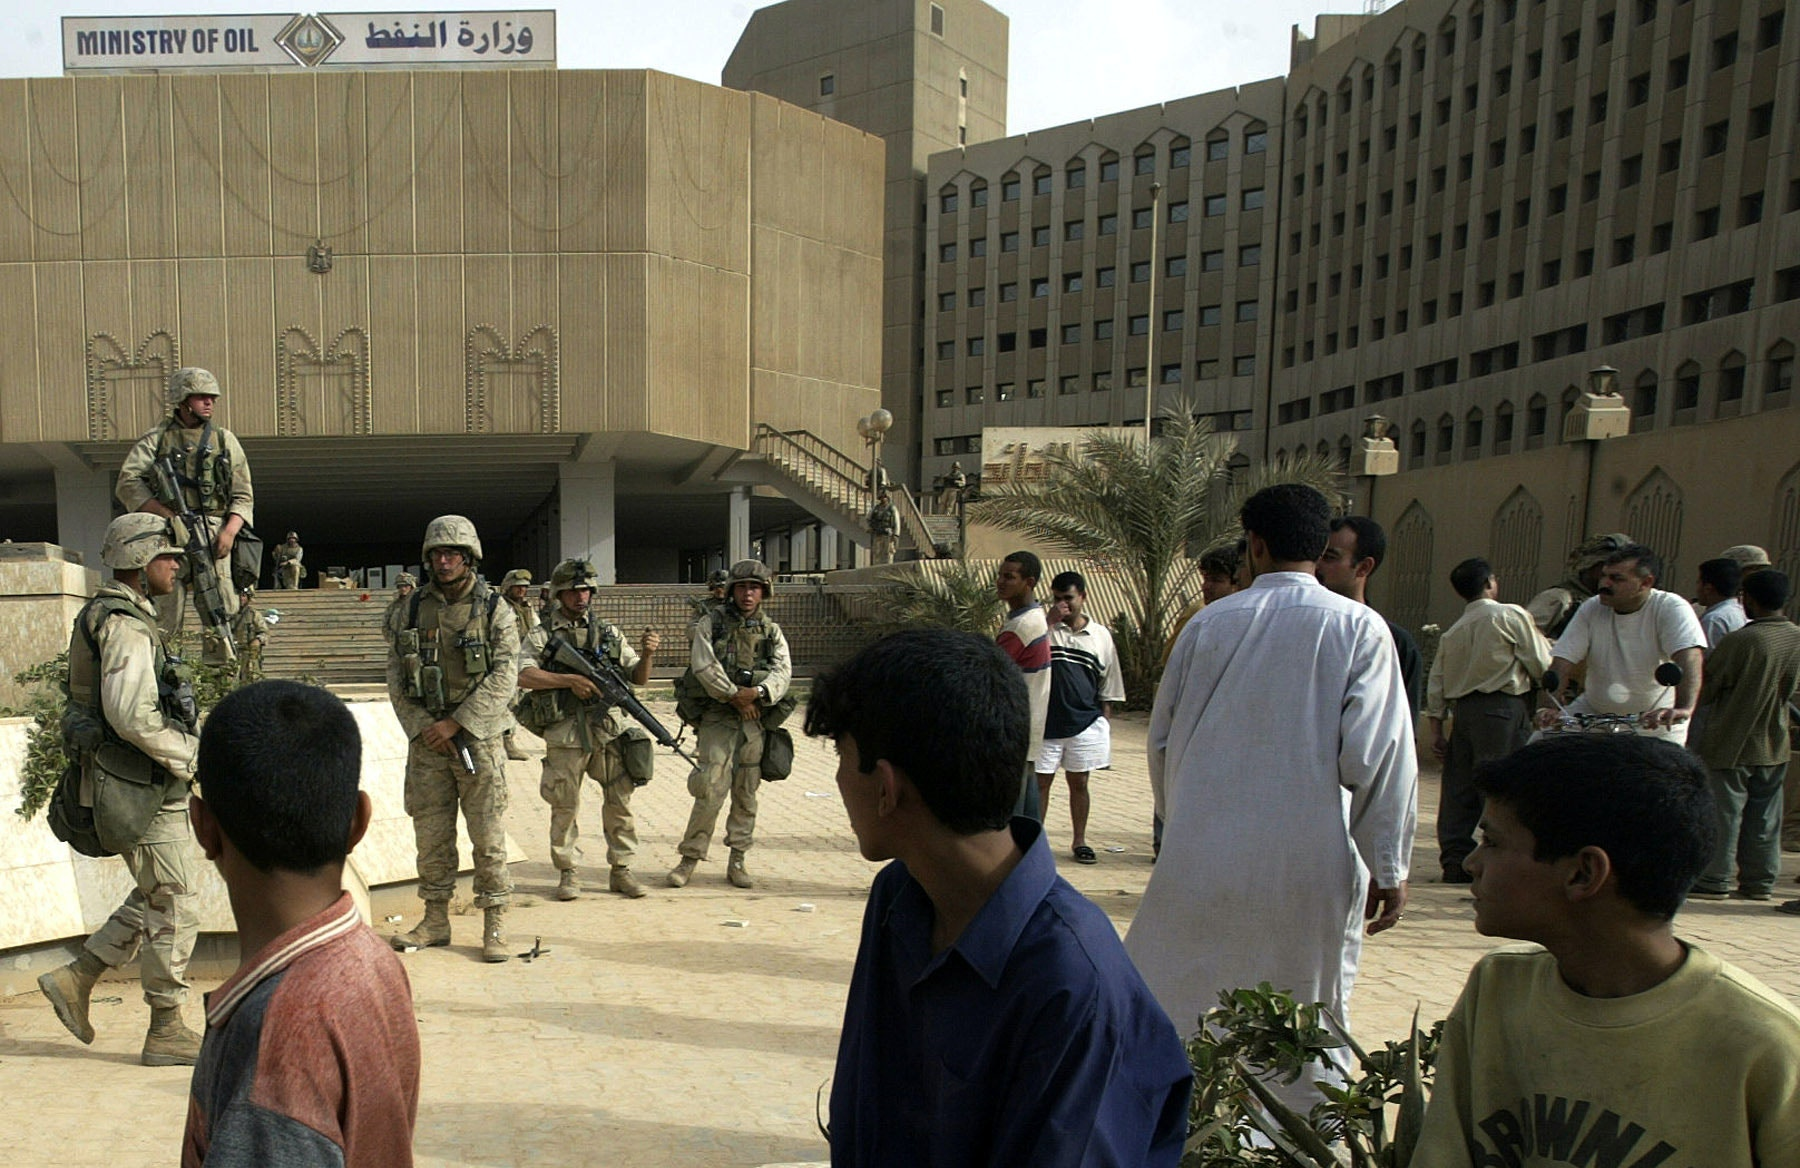 Iraqi children watch U.S. Marines after they took control of the Ministry of Oil building in Baghdad Wednesday, April 9, 2003. (AP Photo/Jerome Delay)